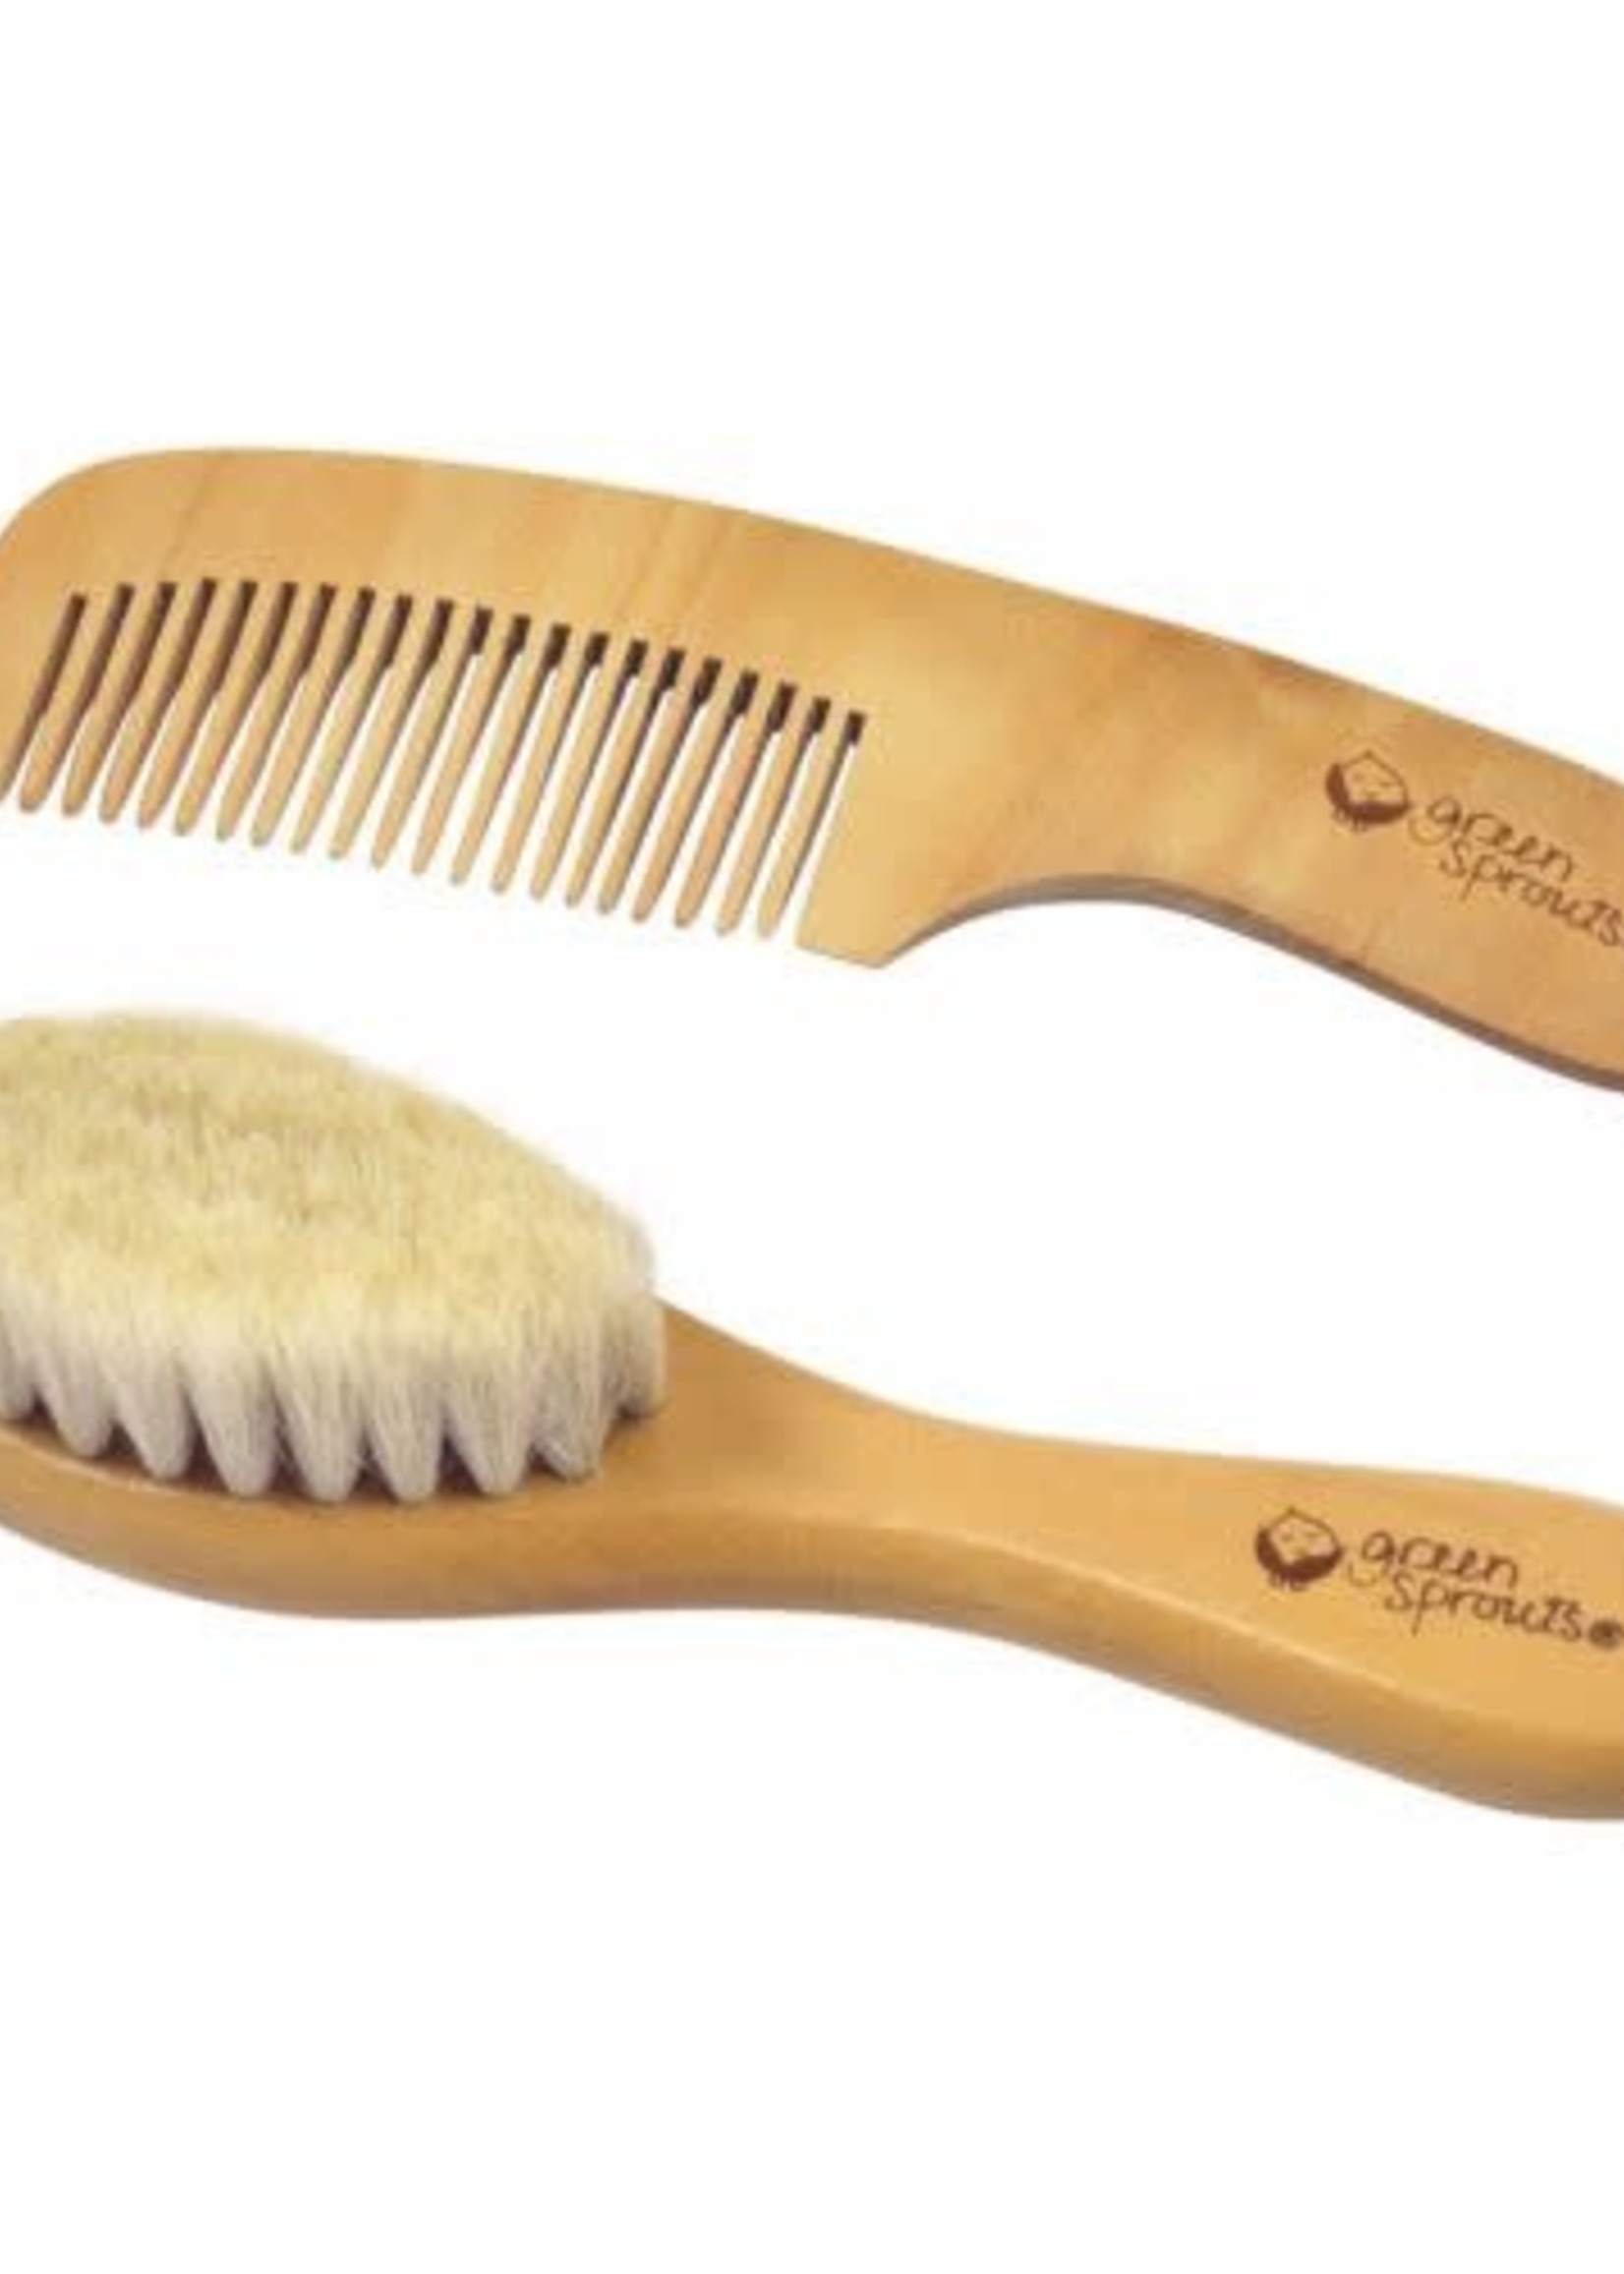 Greensprouts green sprout brush/comb set